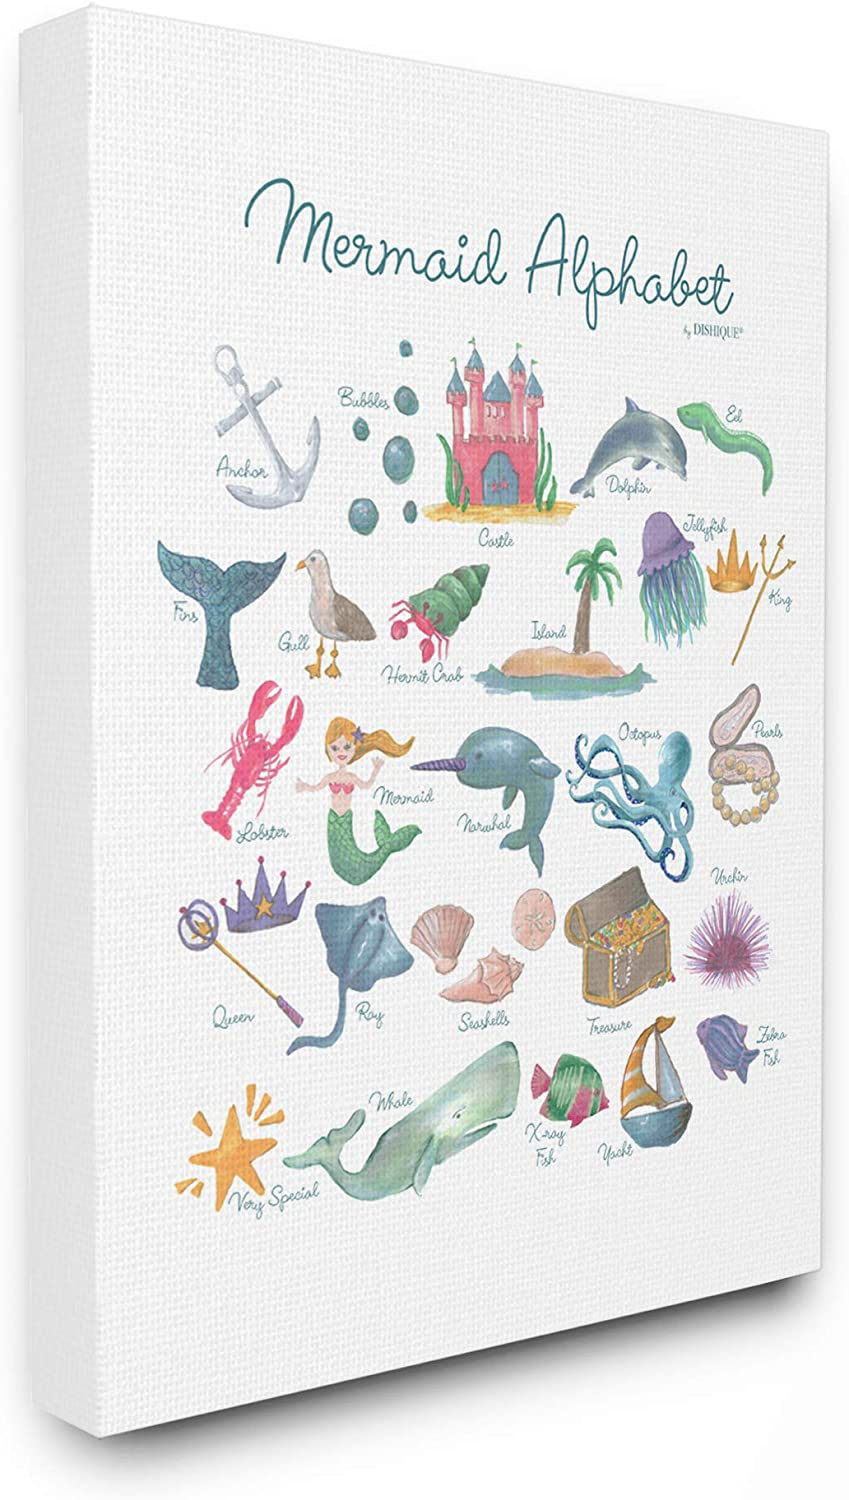 The Kids Room by Stupell Watercolor Mermaid Alphabet with Bubbles Sea Creatures and Anchor Stretched Canvas Wall Art, 11x14, Multi-color